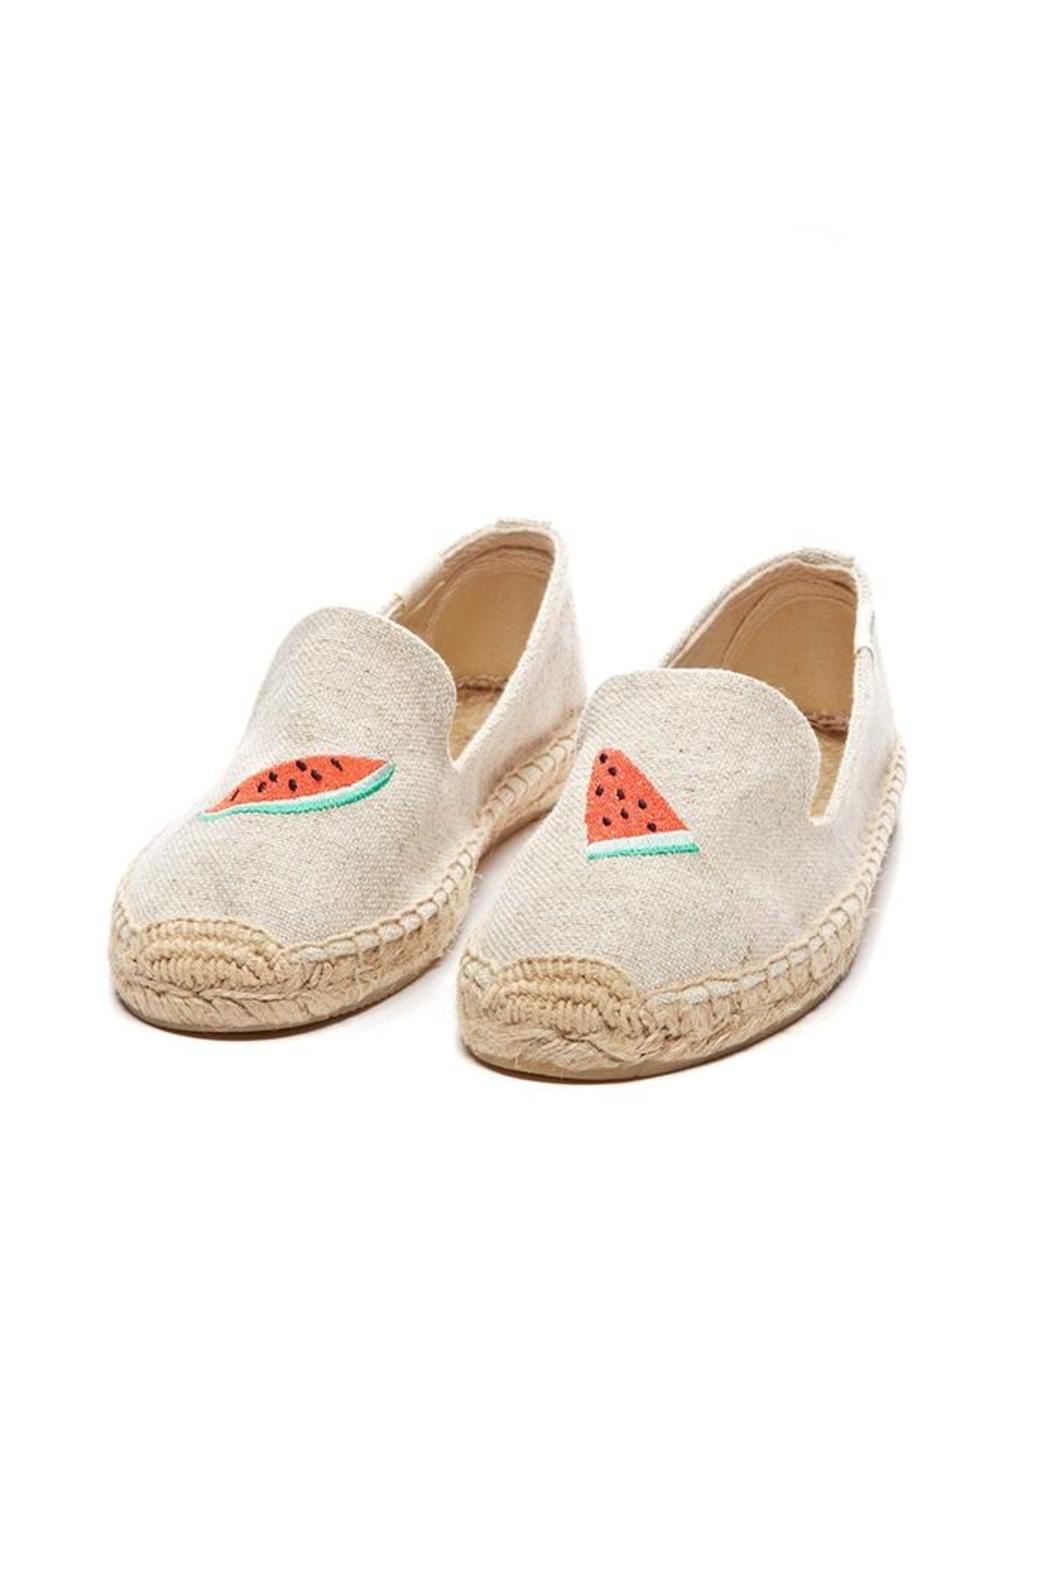 Soludos Woven Watermelon Espadrilles - Front Full Image